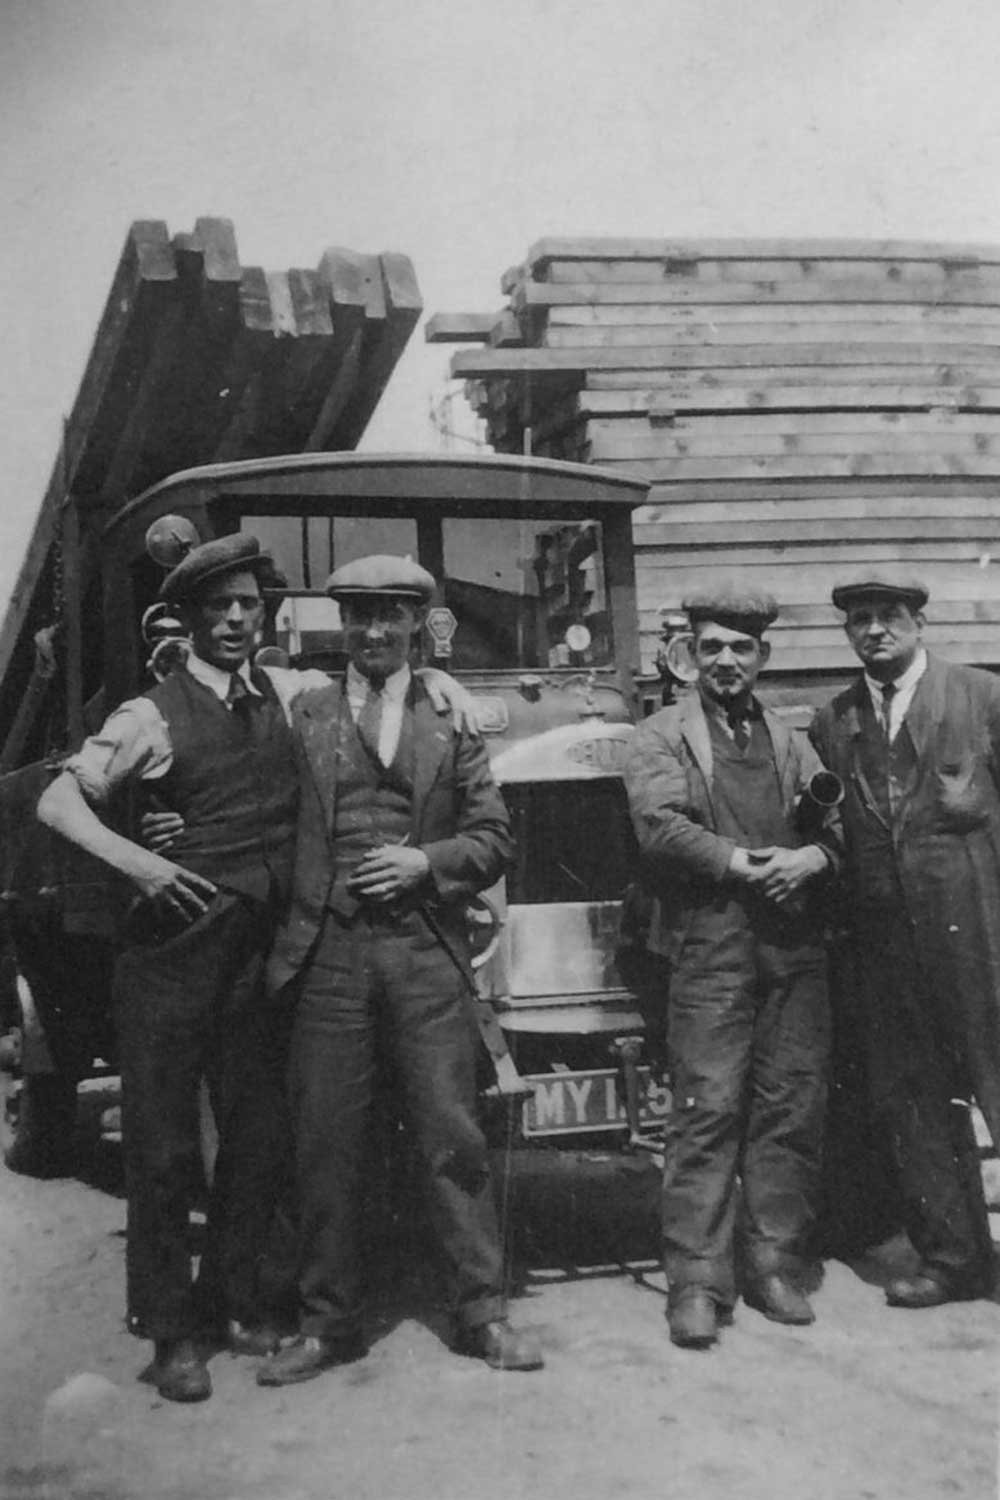 Workers standing in front of truck and wood supplies, Willaim Press Yard, Fairfield Road